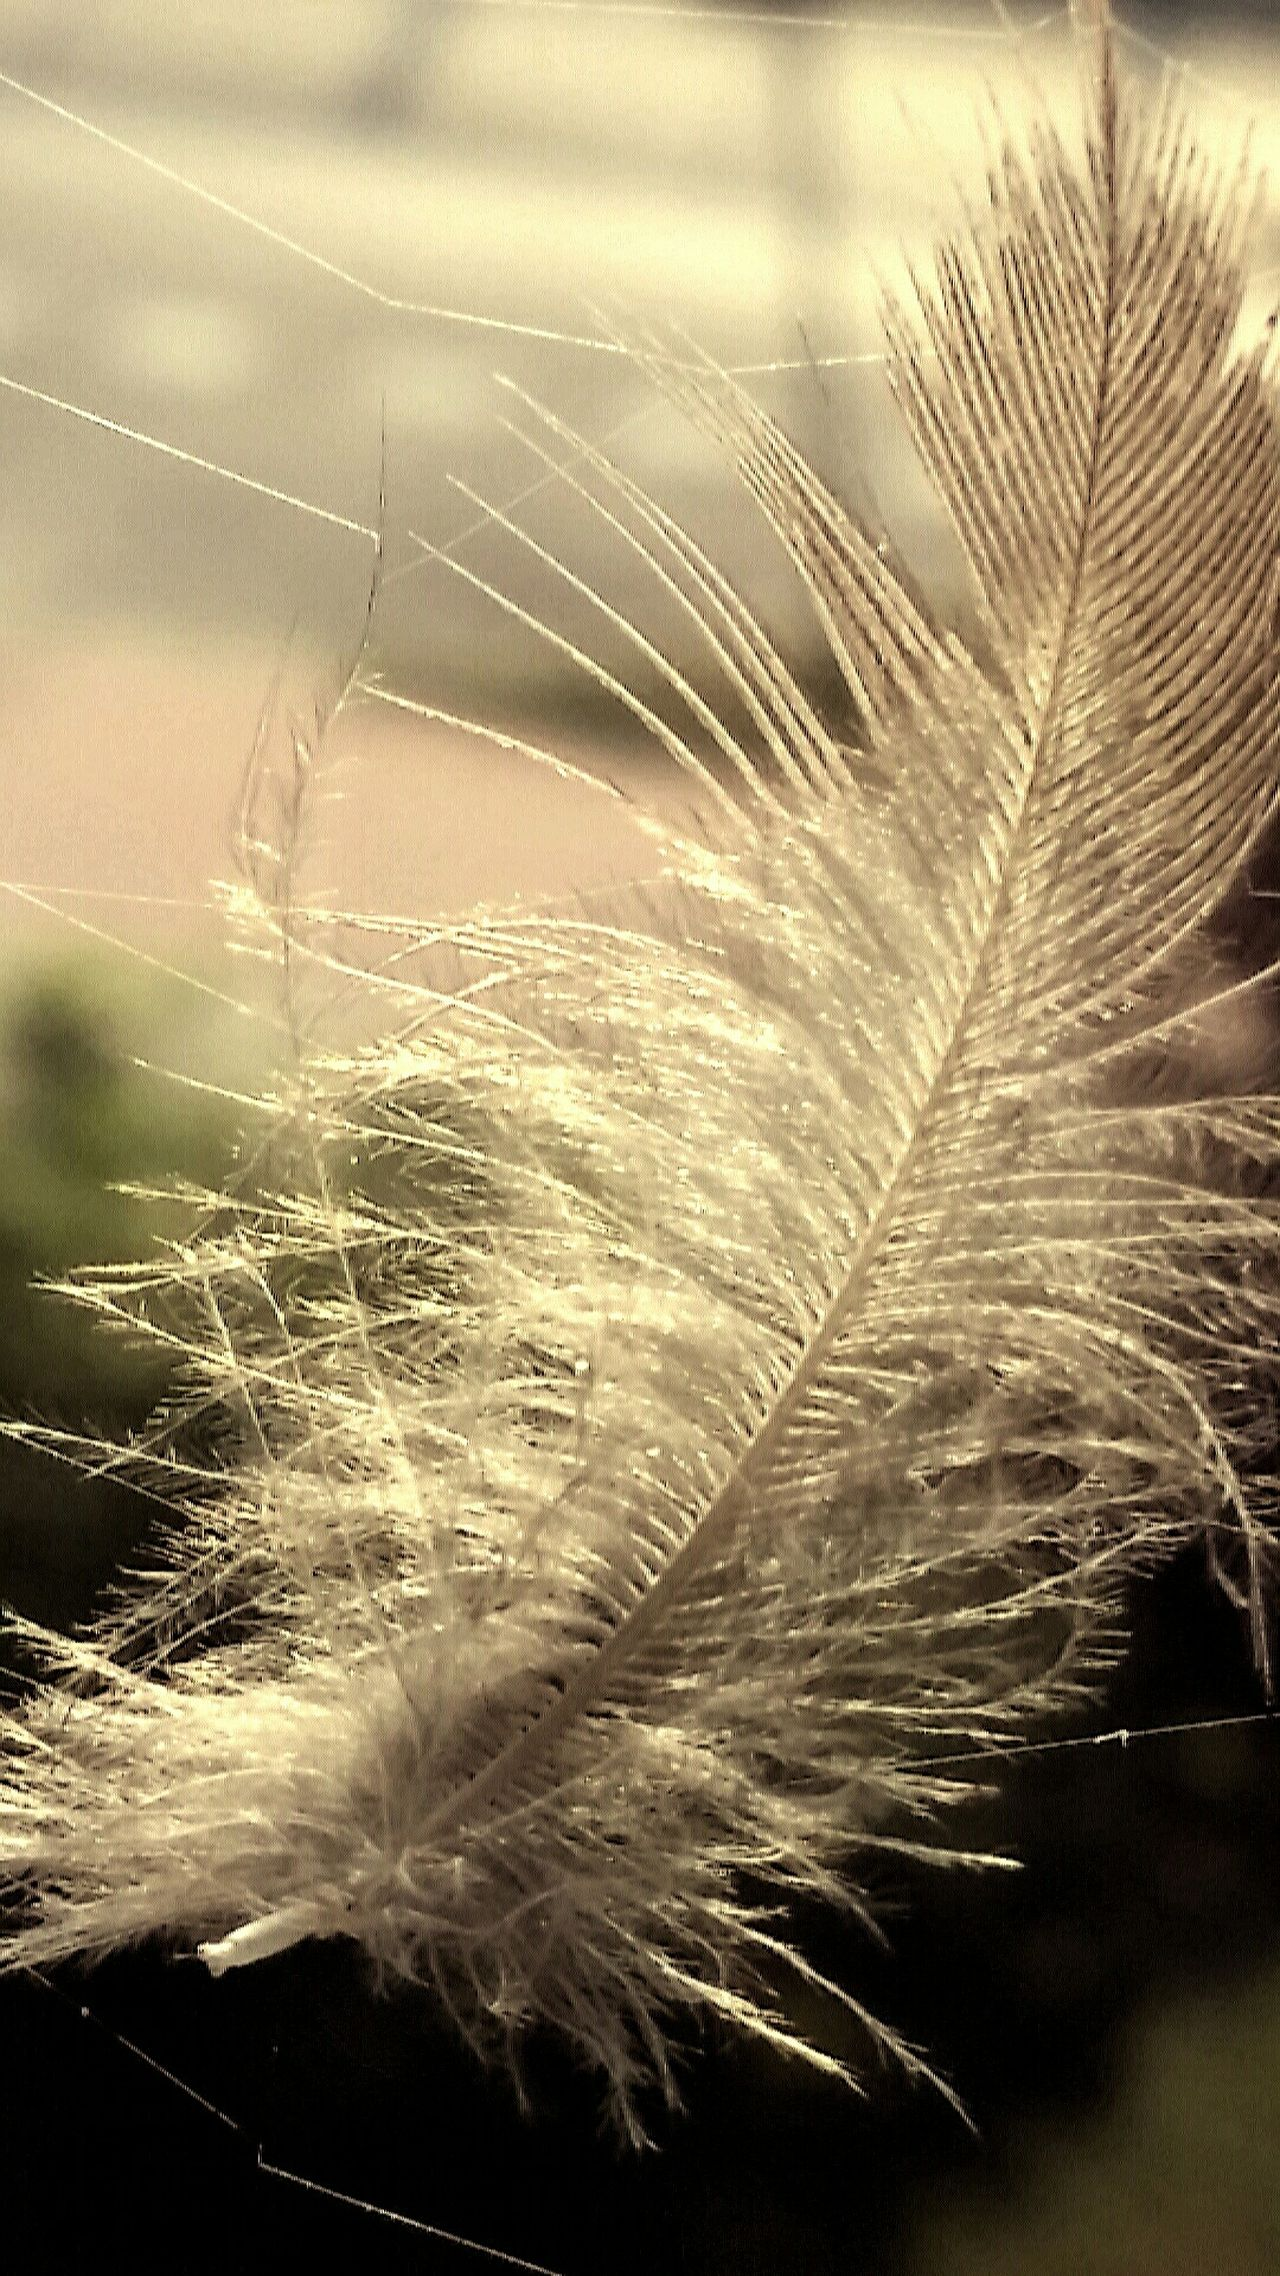 A feather on a spider's web